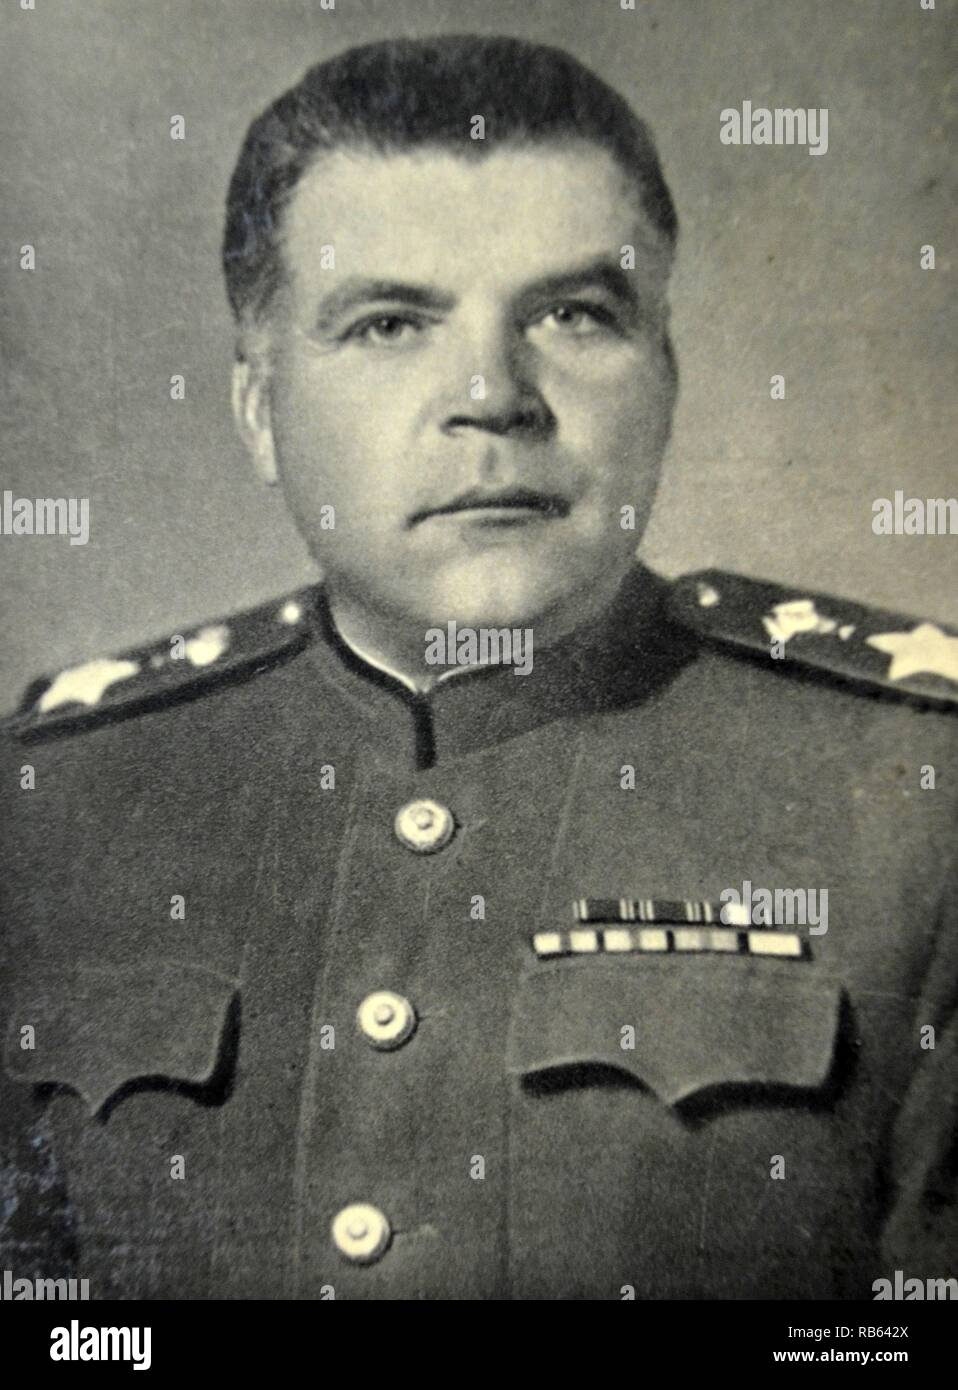 Rodion Yakovlevich Malinowski ( 1898 - 1967). Soviet military commander in World War II and Defense Minister of the Soviet Union in the late 1950s and 1960s. He contributed to the major defeat of Germany at the Battle of Stalingrad and the Battle of Budapest. During the post-war era, he made a pivotal contribution to the strengthening of the Soviet Union as a military superpower. - Stock Image